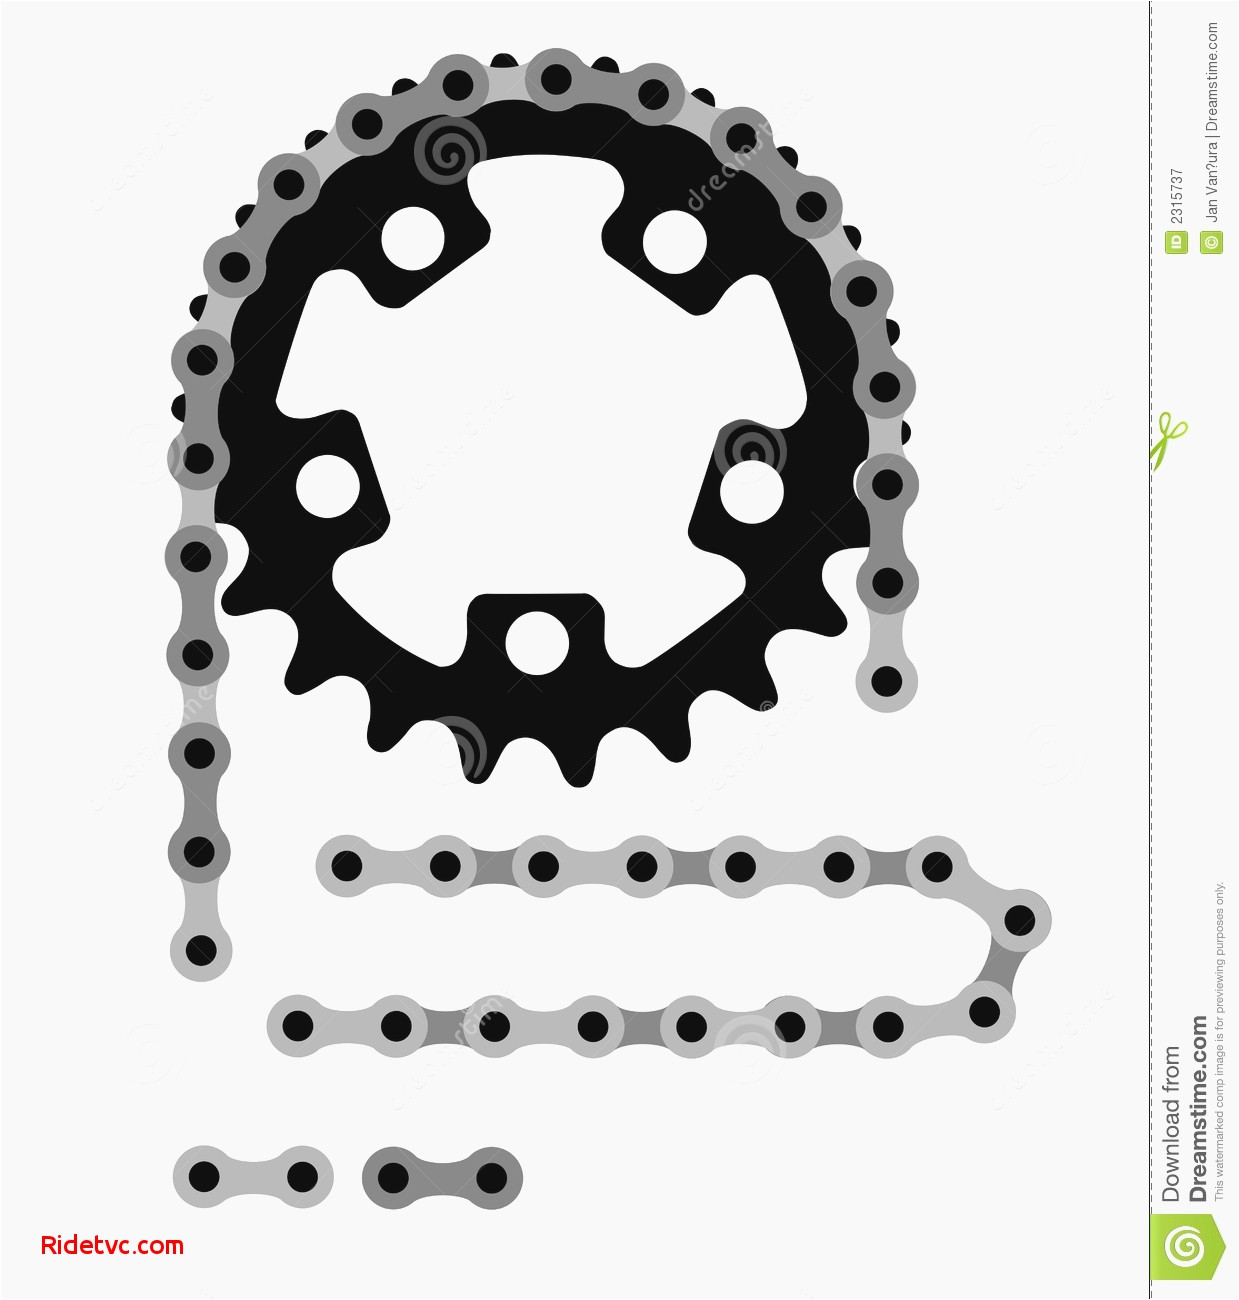 1239x1300 Bike Chain Vector Eps Unique Bicycle Chain Stock Vector